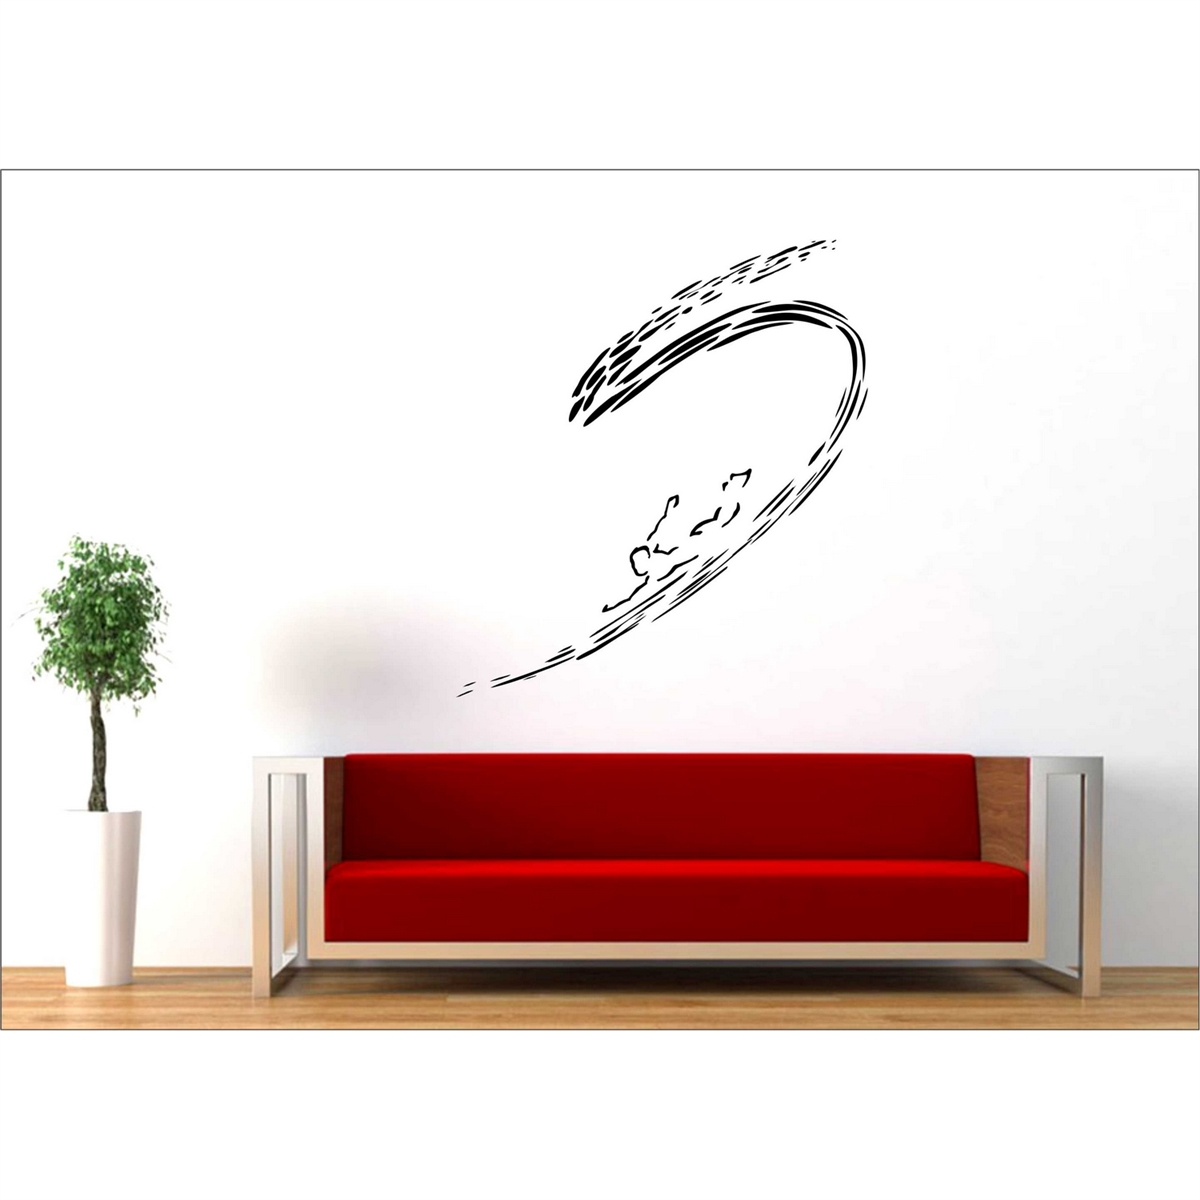 Man And Ocean Surfer Vinyl Wall Decal Art - Wall stickers art